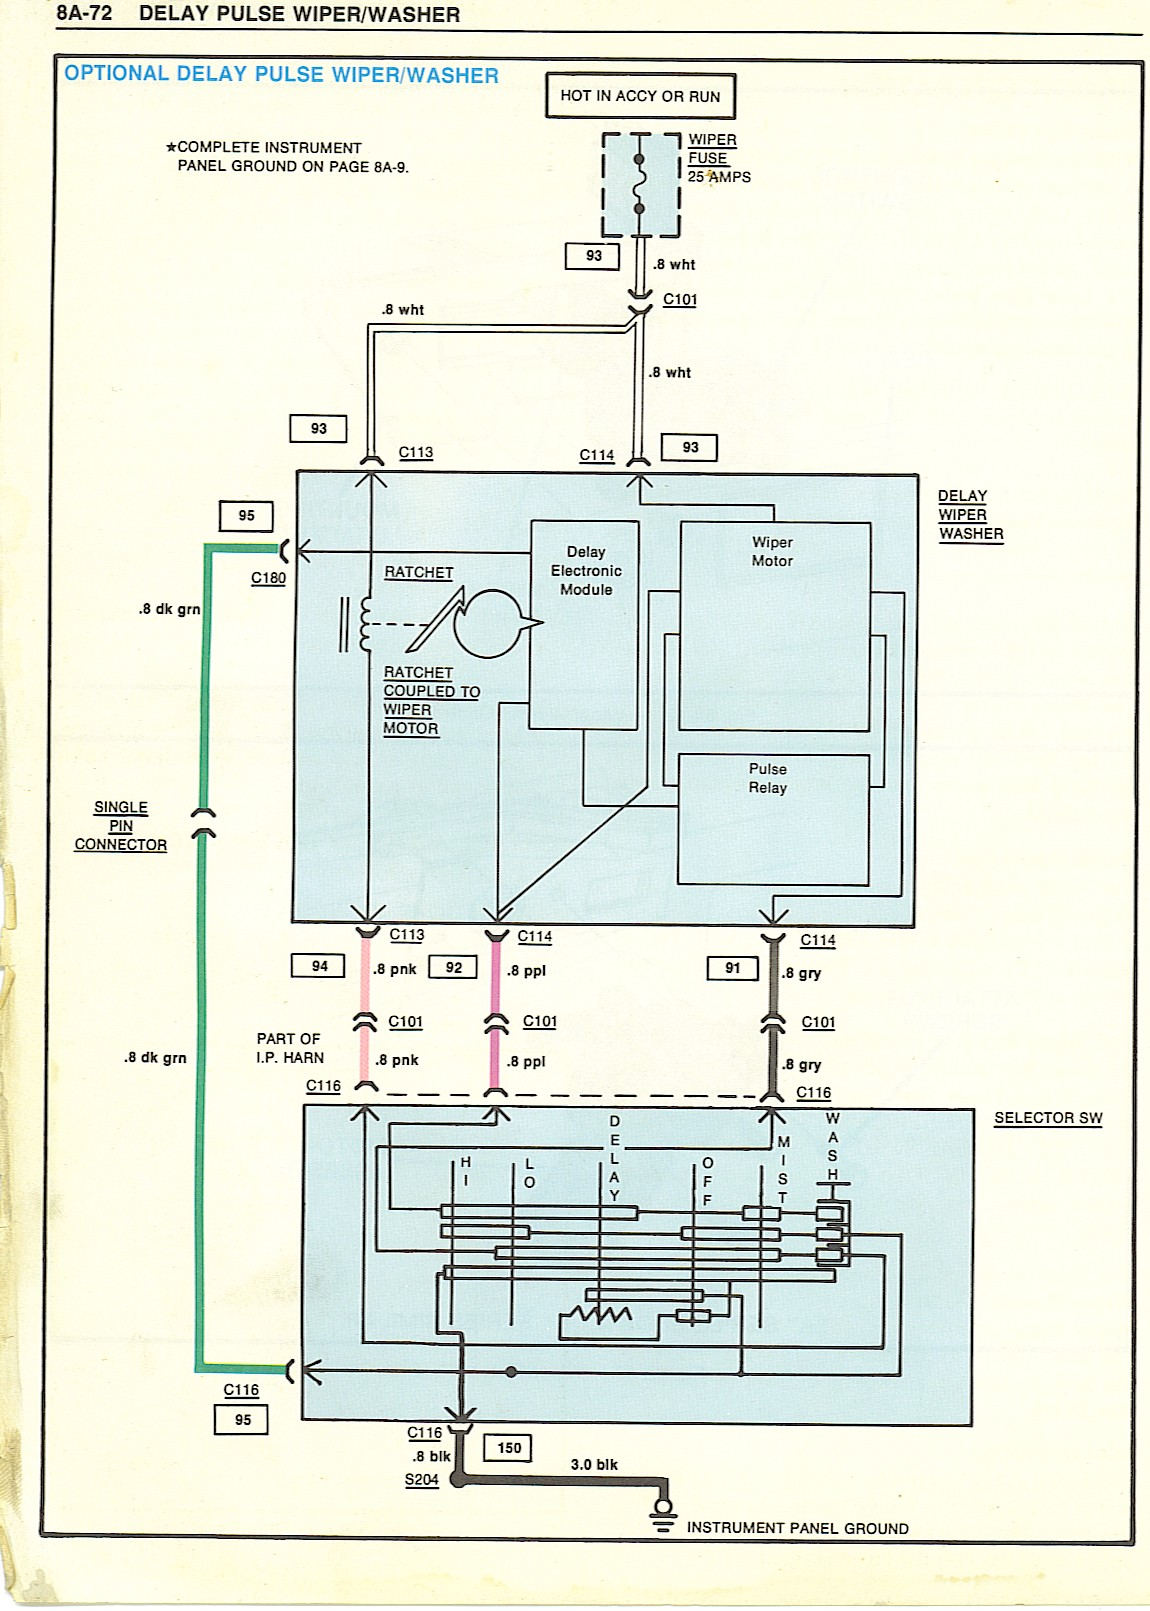 1972 chevelle radio wiring diagram romeo and juliet family tree diagrams